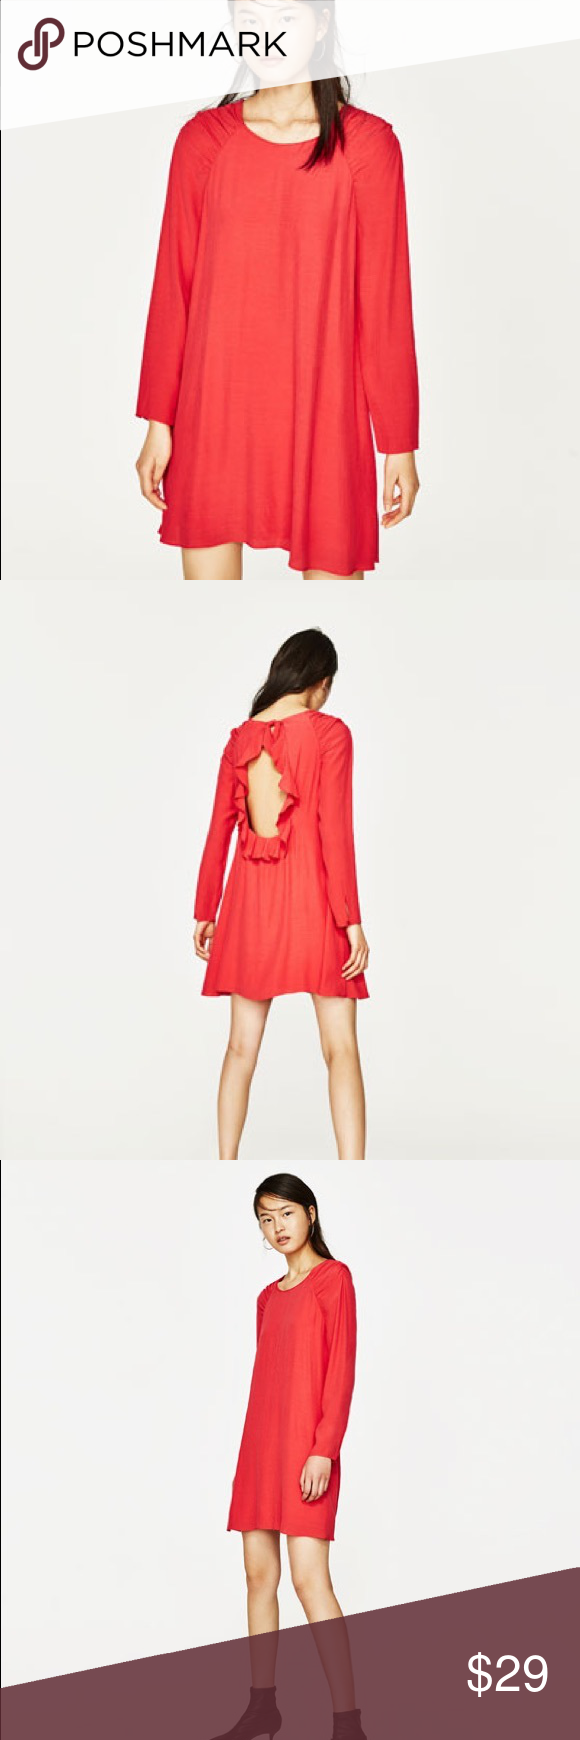 7091b28ddcb ANY OFFER NWT ZARA red dress NWT ZARA red dress with open back. BUNDLESwill  receive their clothes in an original ZARA package Zara Dresses Midi